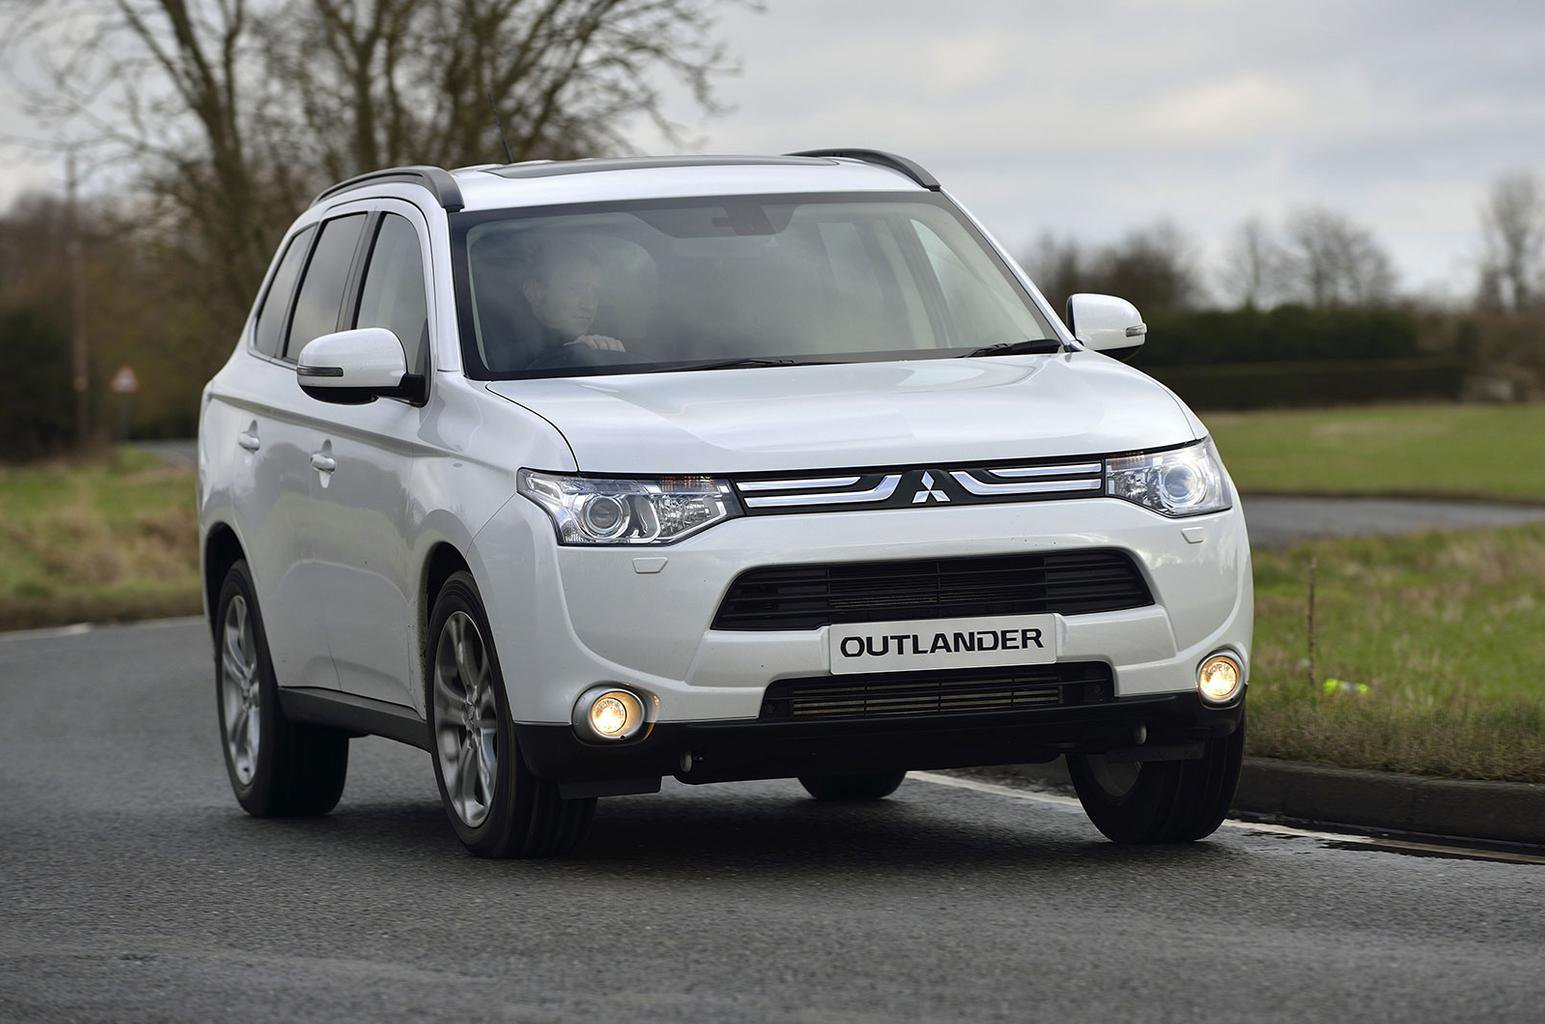 Used car of the week: Mitsubishi Outlander